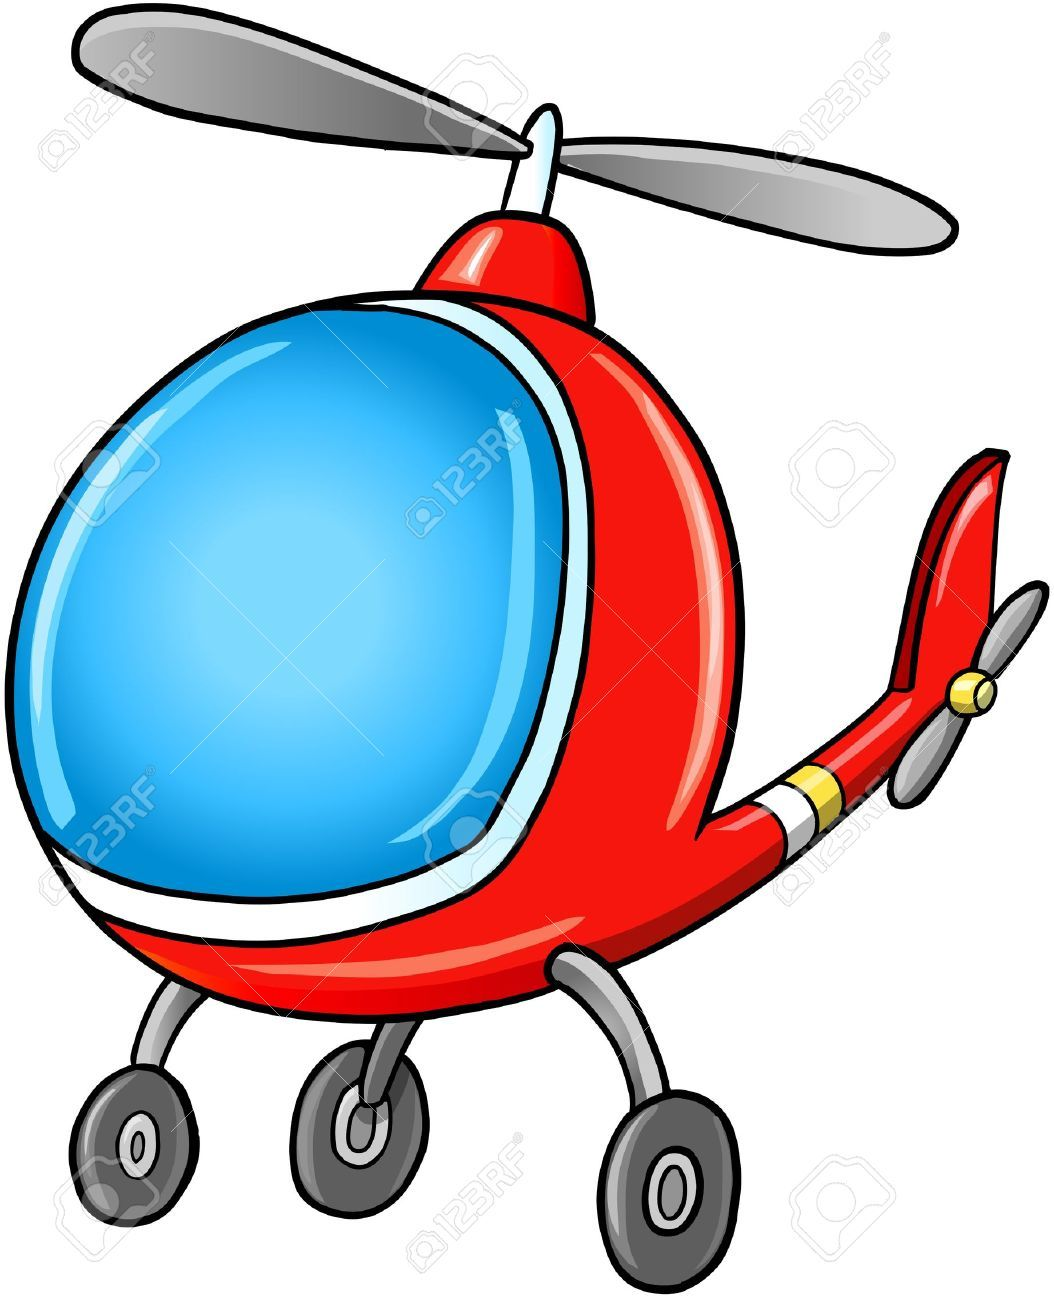 Cute Doodle Cartoon Helicopter Vector Illustration Royalty Free Cute Doodles Doodle Cartoon Bday Party Kids